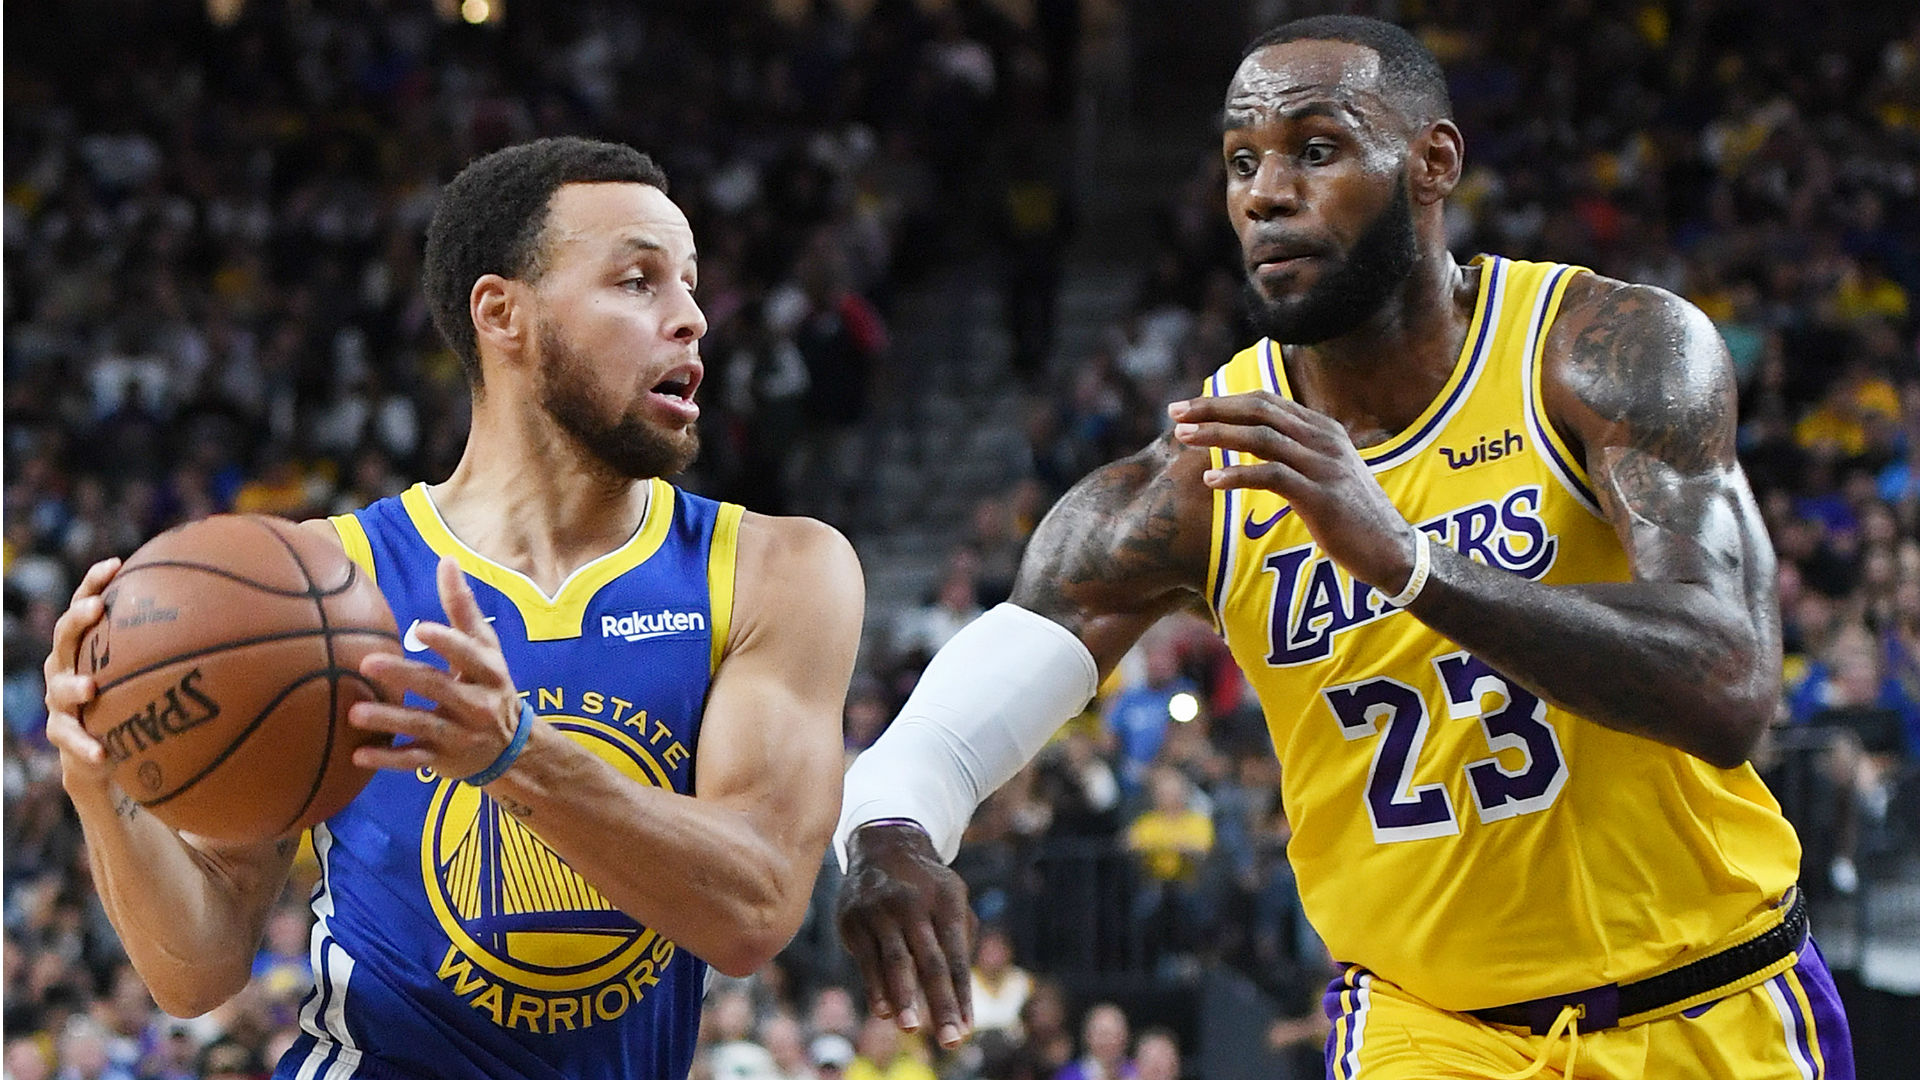 LeBron James, Stephen Curry top list of NBA's highest-paid players